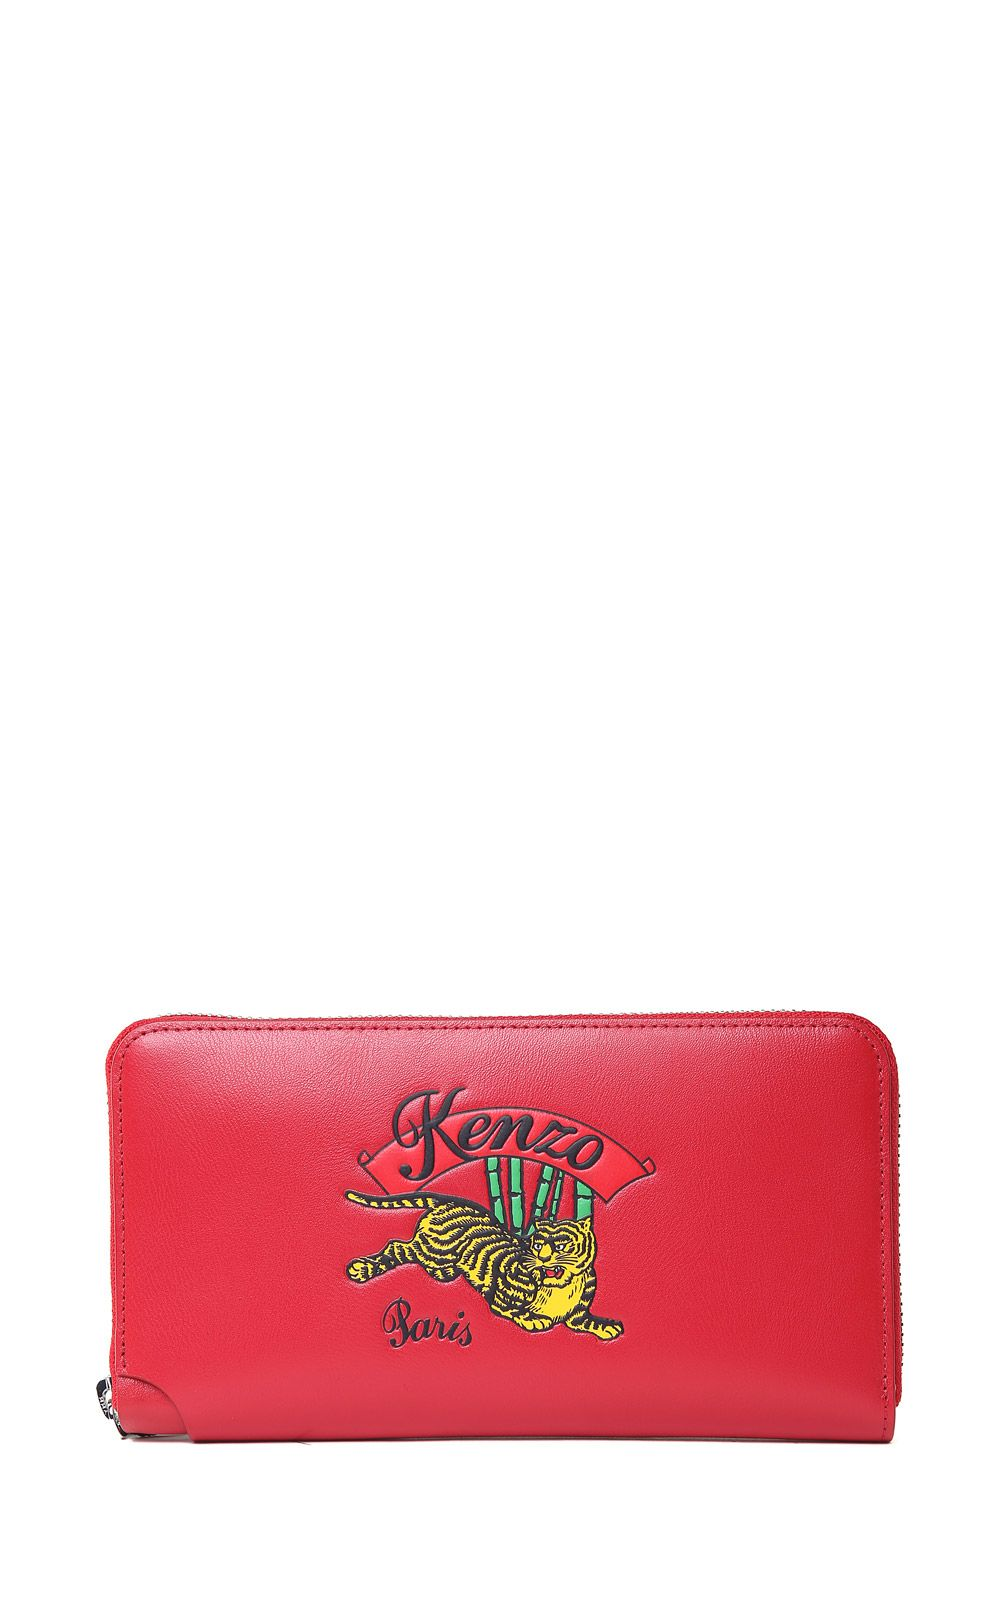 JUMPING TIGER LEATHER WALLET